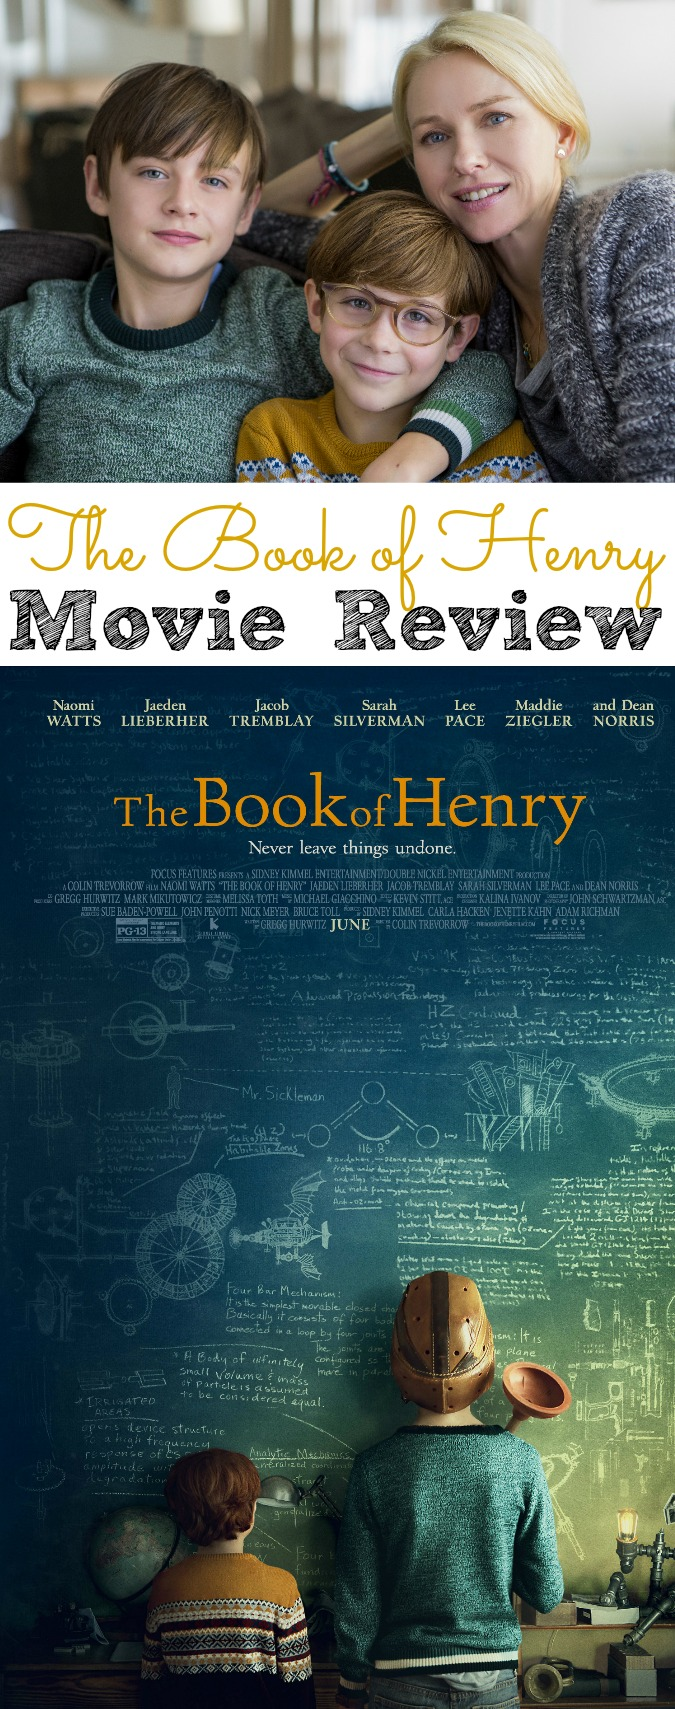 The Book of Henry Movie Review #TheBookofHenry - abccreativelearning.com